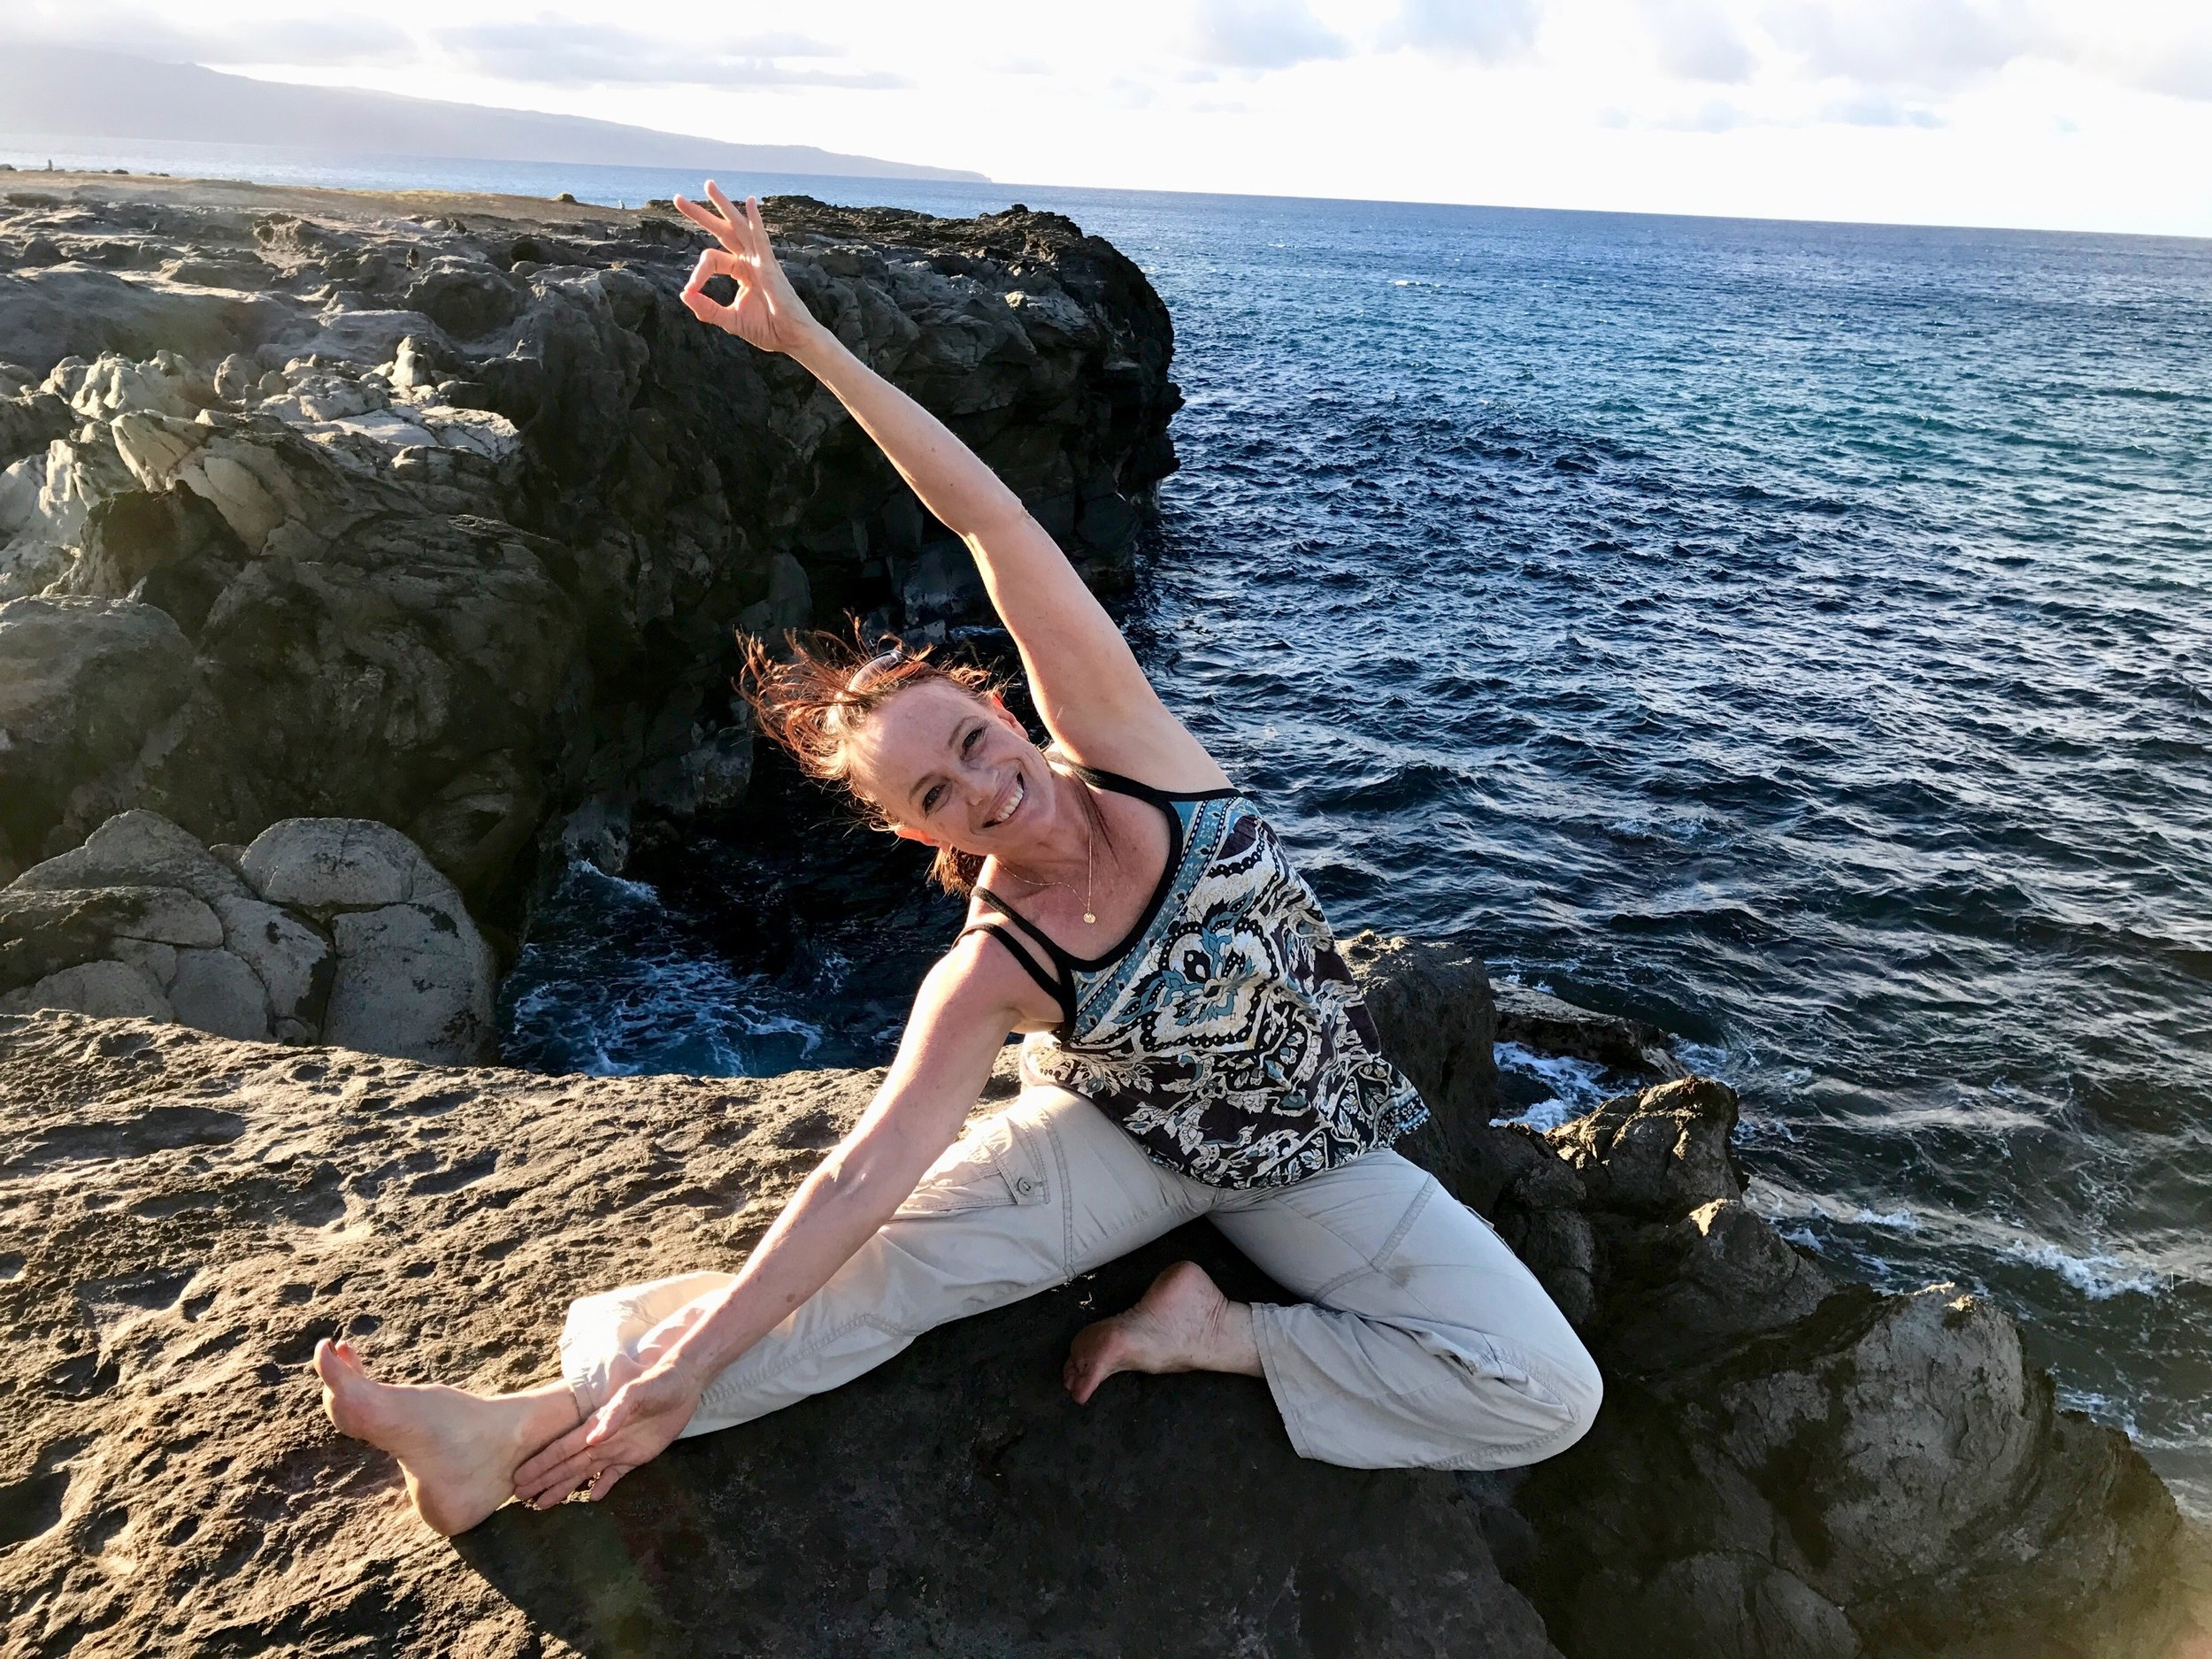 Soaking up the sea breeze at Dragon's Teeth / Makaluapuna Point - West Maui, HI  (Photo by Lydie Baudry)